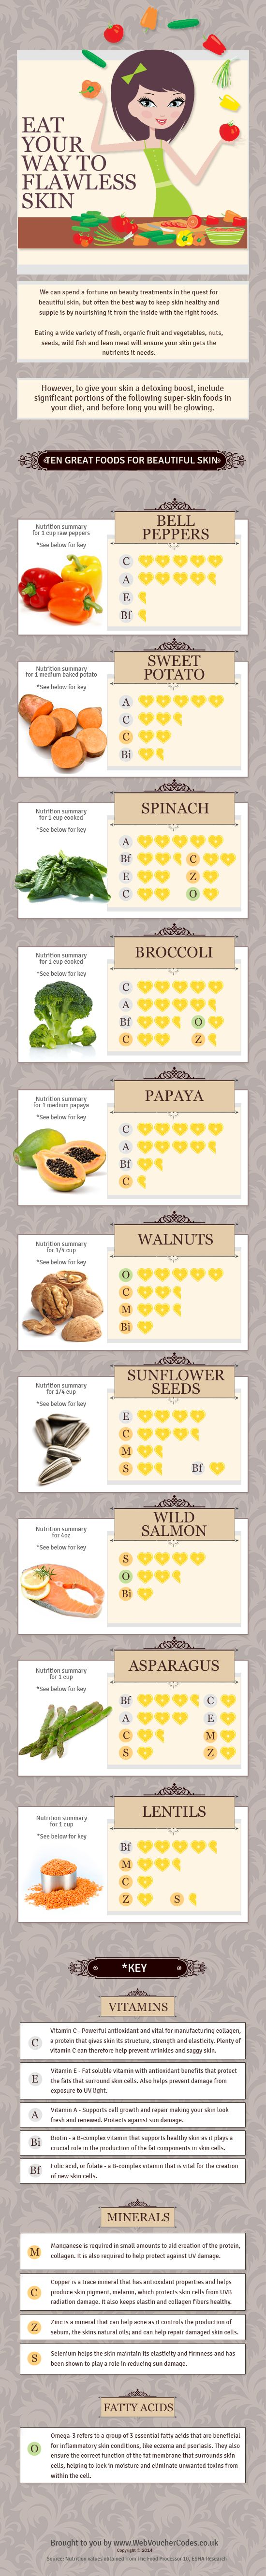 Everyone wants smooth, radiantskin.What you eat can bring you closer to that goal. While there is no magic food that whisks the wrinkles away, the basics are simple.Want smoother, younger-looking skin? Add these10 anti-ageing foods that will give you ayounger-looking skin! Source:http://visual.ly/